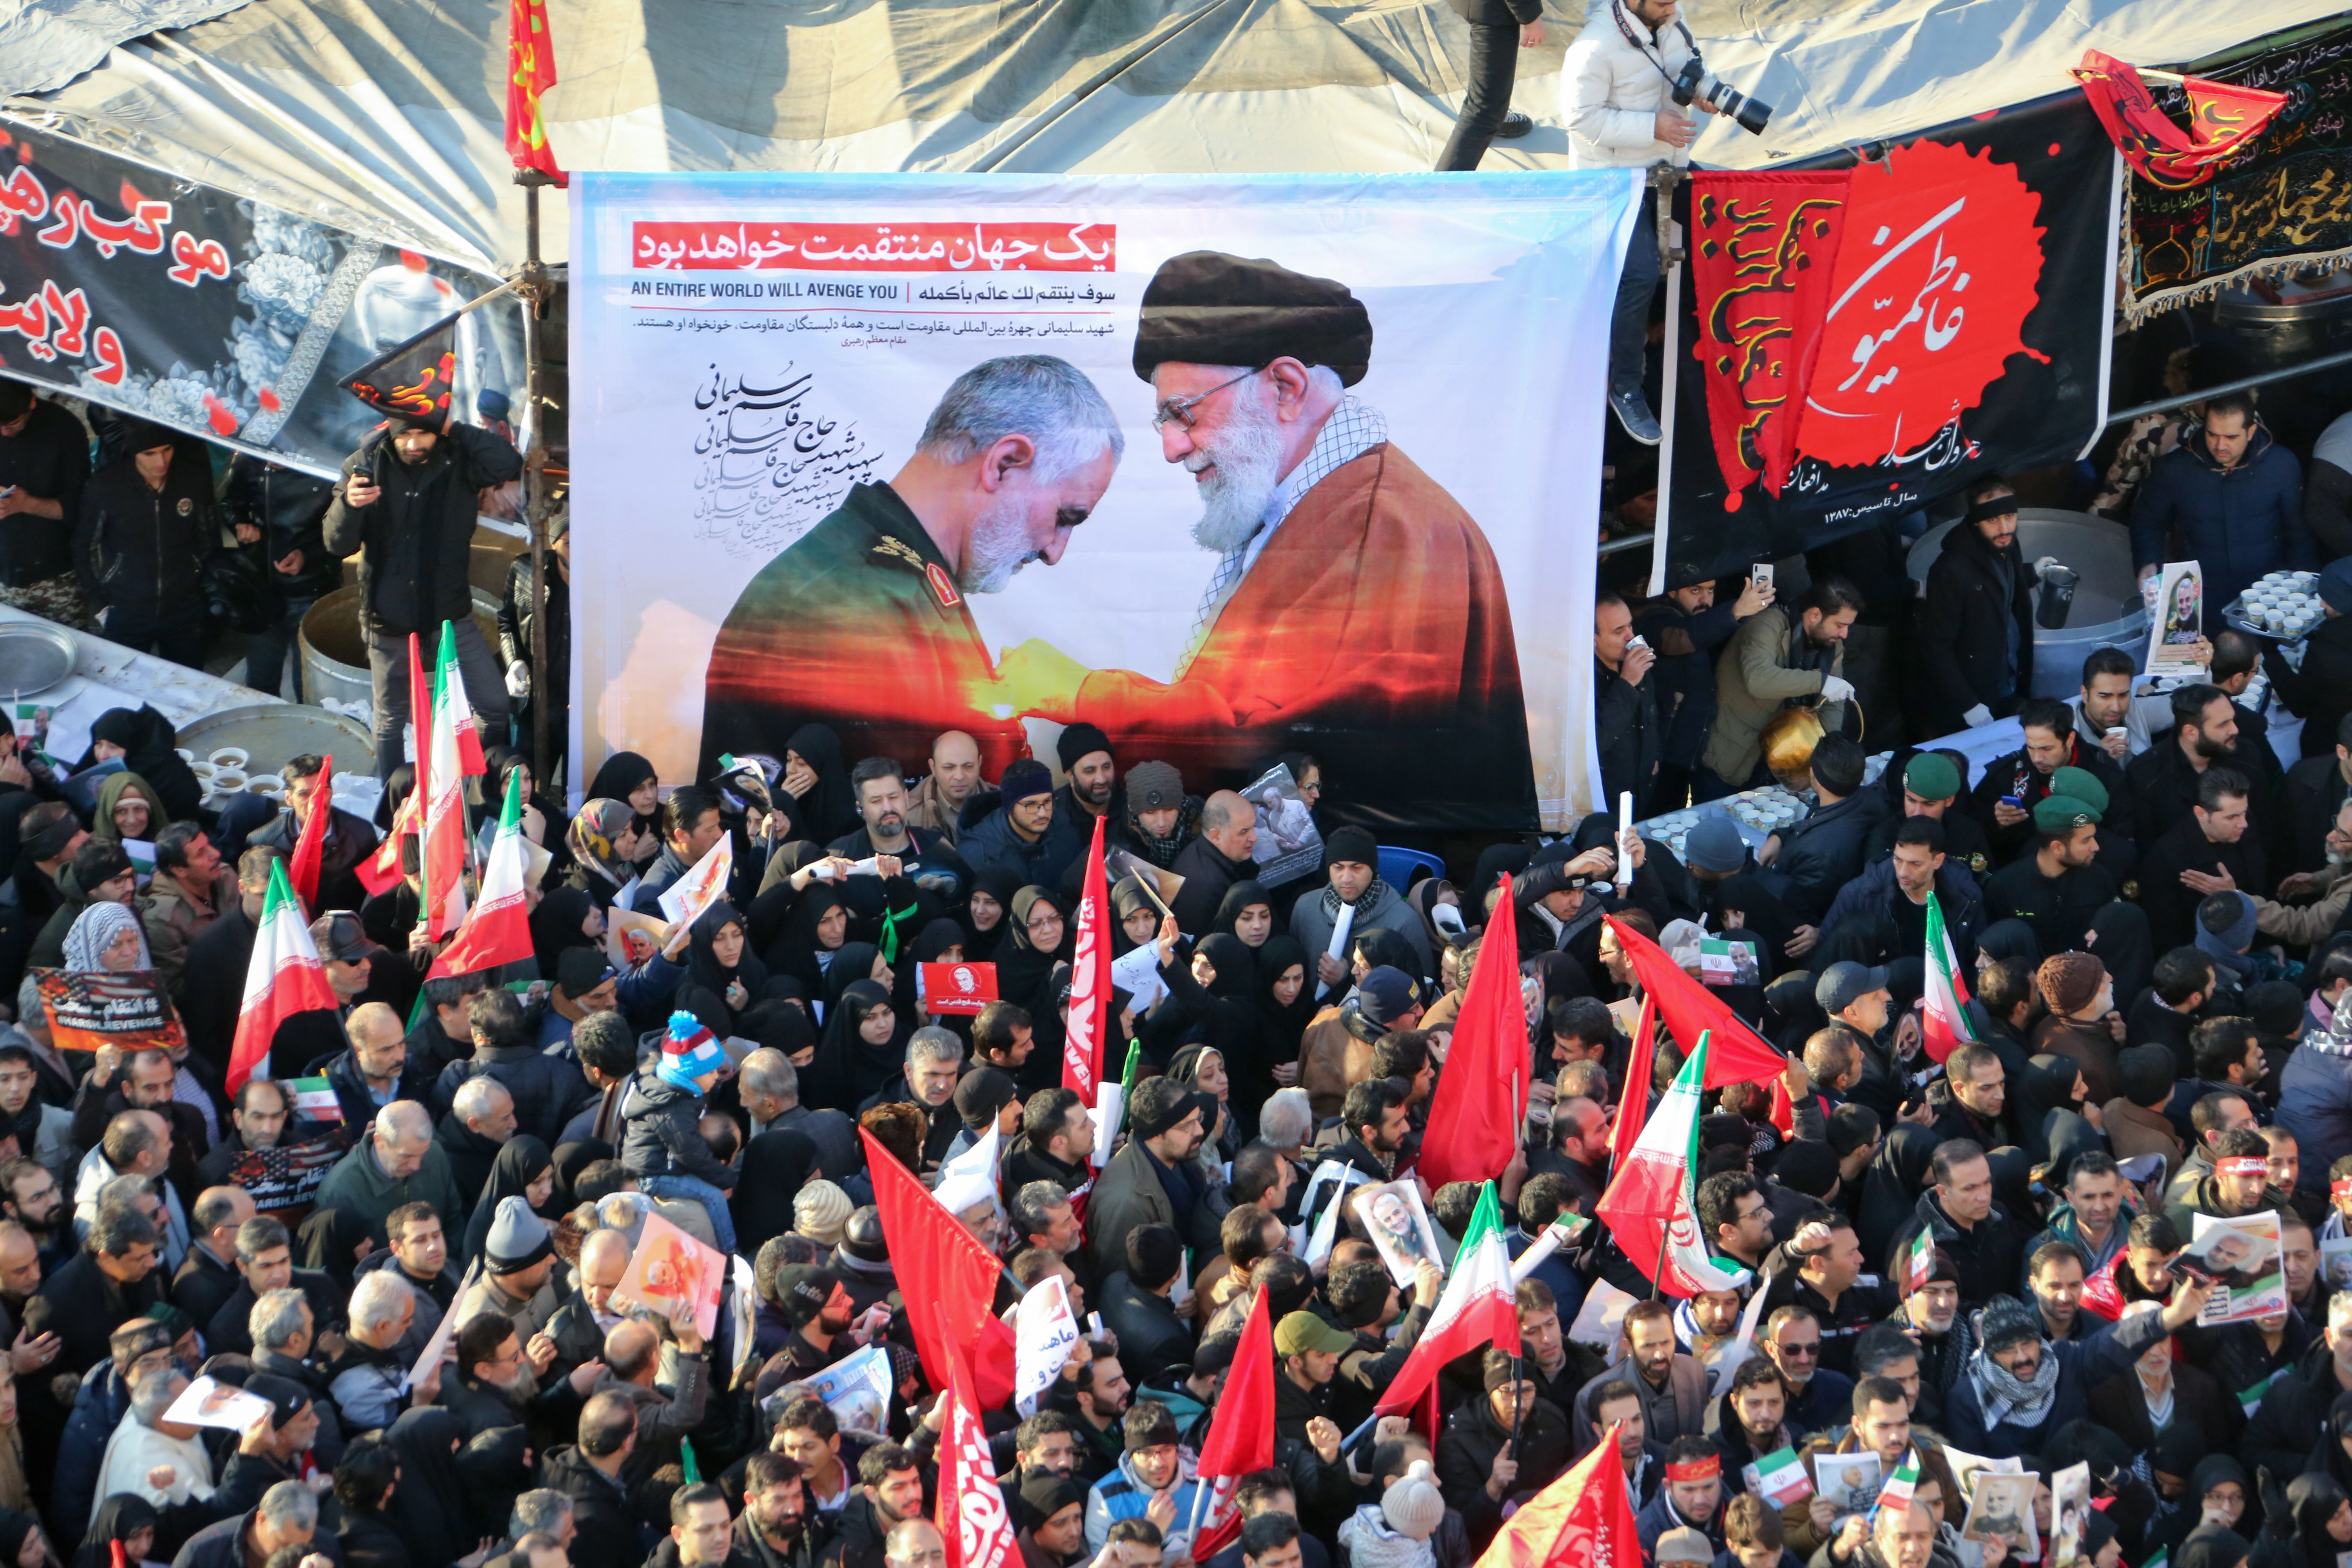 "Iranian mourners carry a picture of Iran's Supreme Leader Ayatollah Ali Khamenei (R) granting the Order of Zolfaghar, the highest military honour of Iran, to General Qasem Soleimani, during the latter's funeral procession in the capital Tehran on January 6, 2020. - Downtown Tehran was brought to a standstill as mourners flooded the Iranian capital to pay an emotional homage to Soleimani, the ""heroic"" general who spearheaded Iran's Middle East operations as commander of the Revolutionary Guards' Quds Force and was killed in a US drone strike on January 3 near Baghdad airport along with Iraqi paramilitary chief Abu Mahdi al-Muhandis and others. (Photo by ATTA KENARE/AFP via Getty Images)"